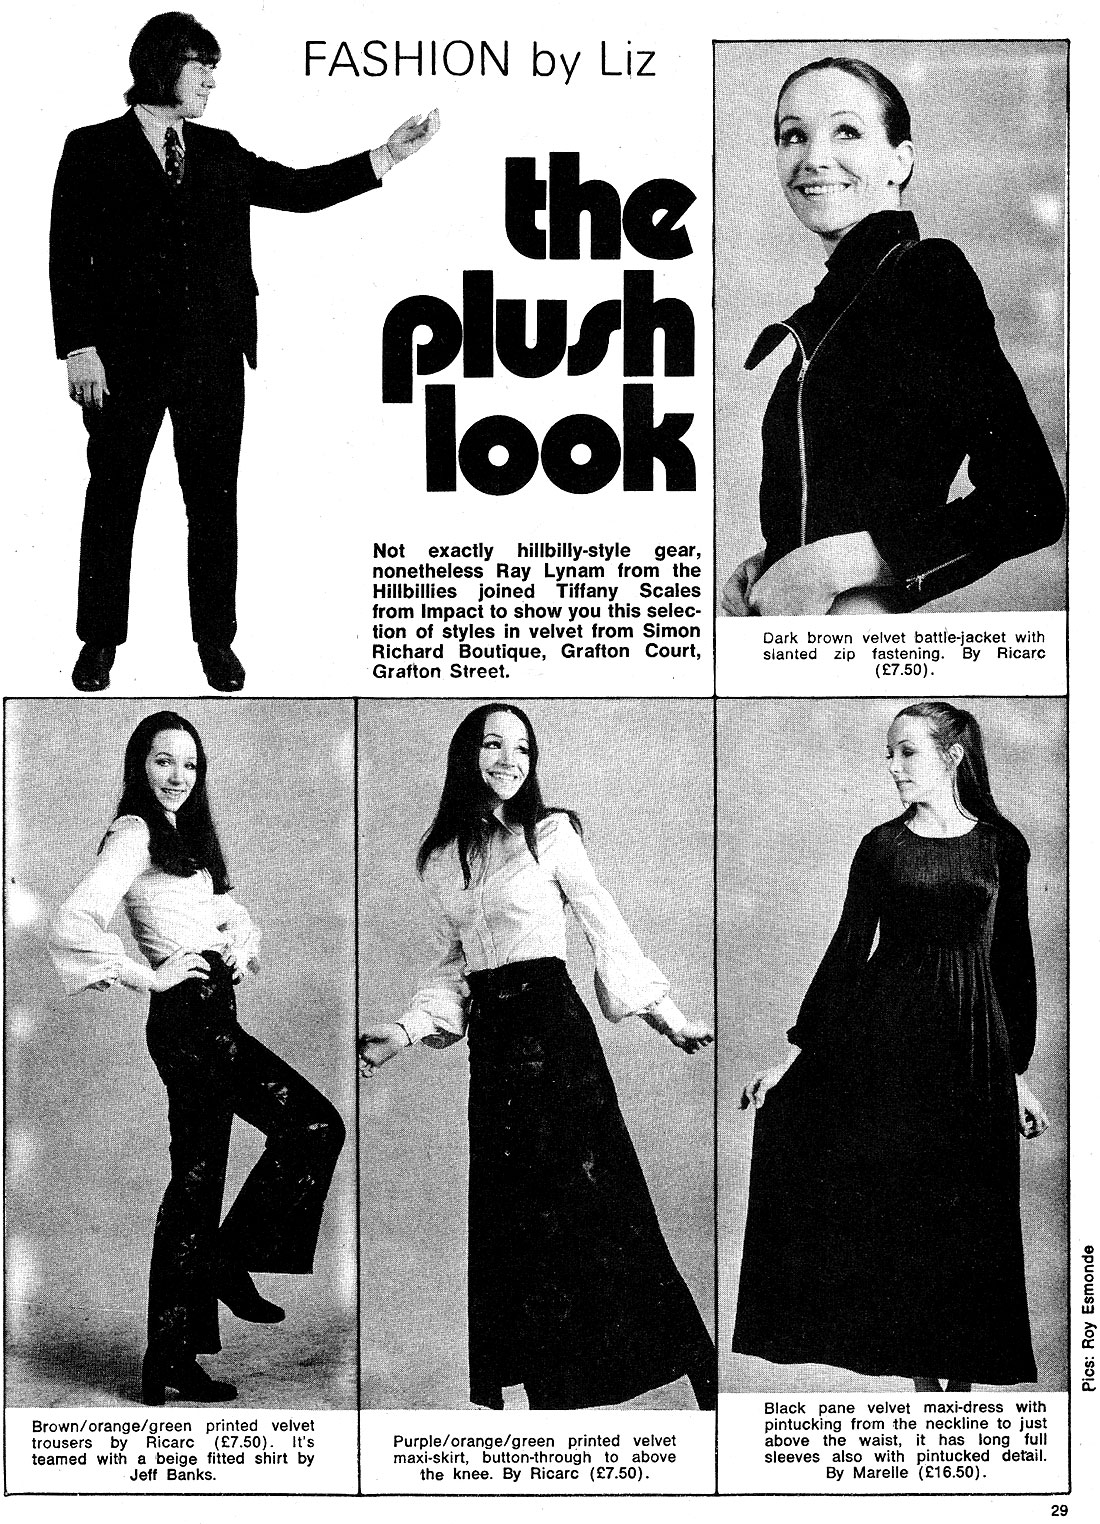 new spotlight mag ireland January 1972 fashion